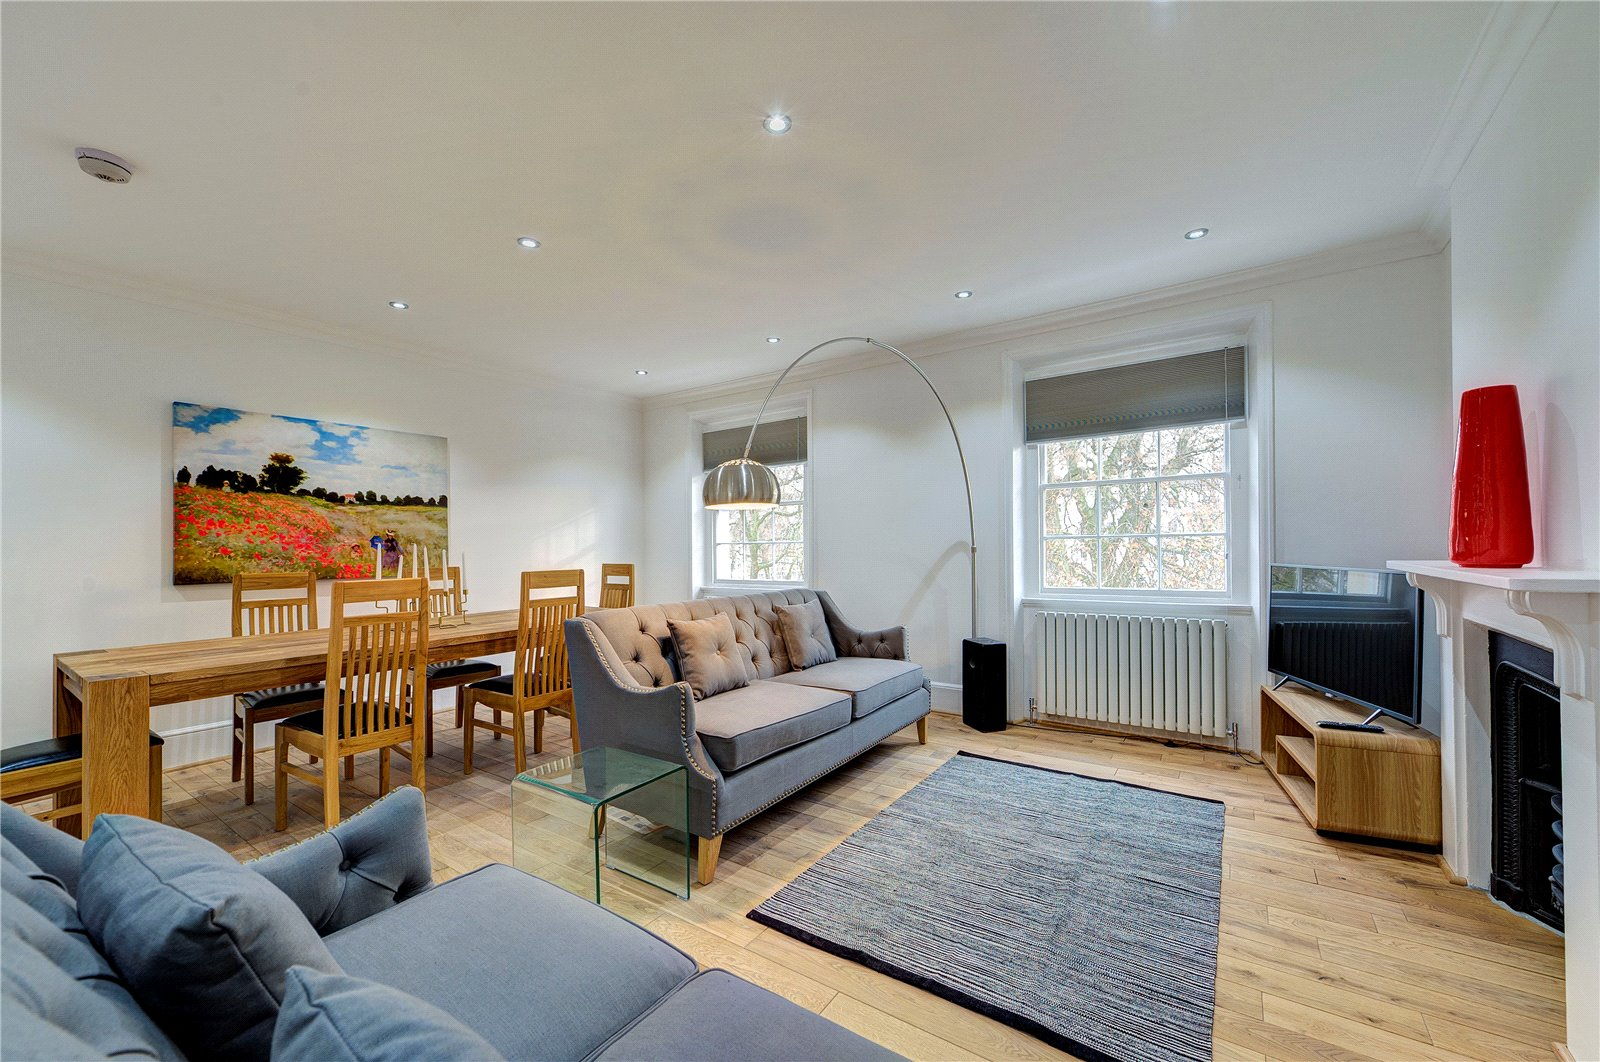 Apartment for Rent at Eccleston Square, Pimlico, London, SW1V Eccleston Square, Pimlico, London, SW1V